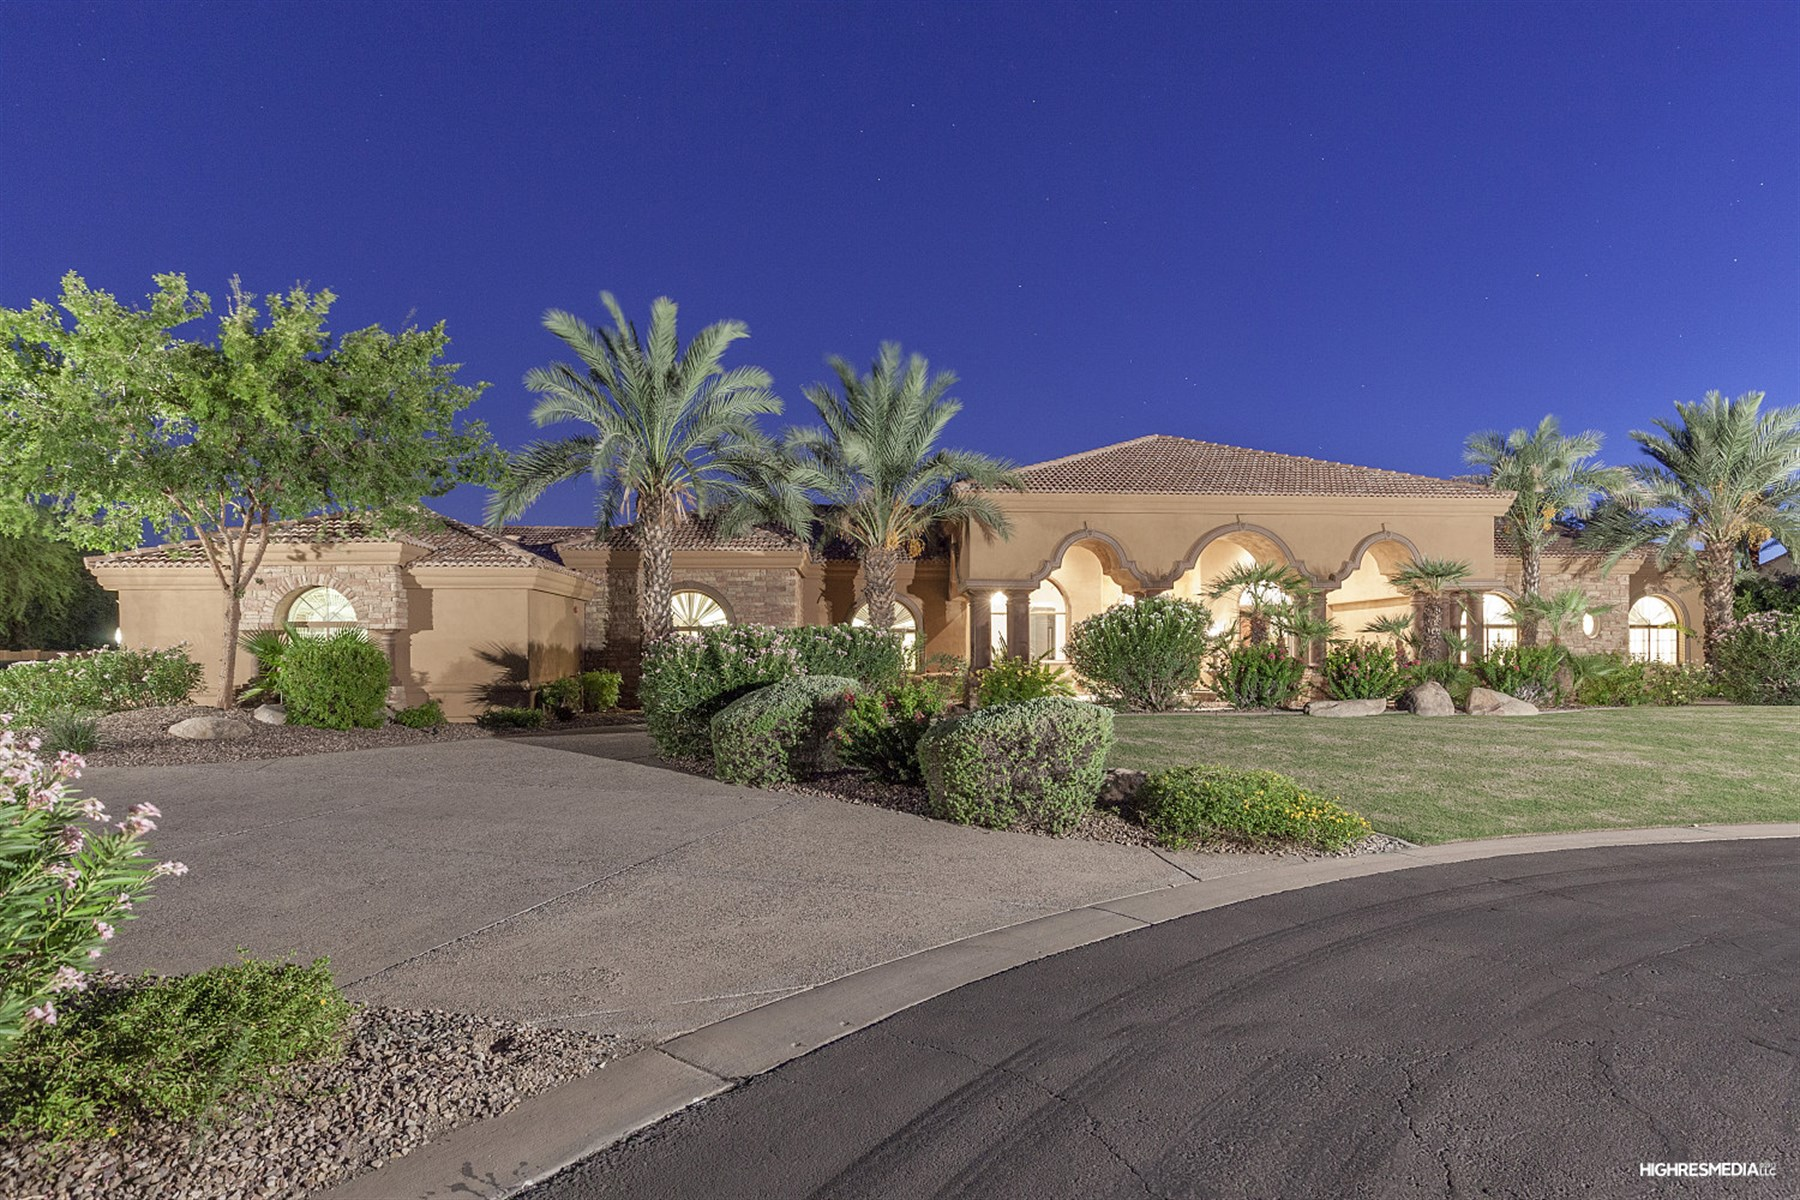 一戸建て のために 売買 アット Gated enclave of Portales Del Sol in the Cactus Corridor 7647 E Poinsettia DR Scottsdale, アリゾナ, 85260 アメリカ合衆国